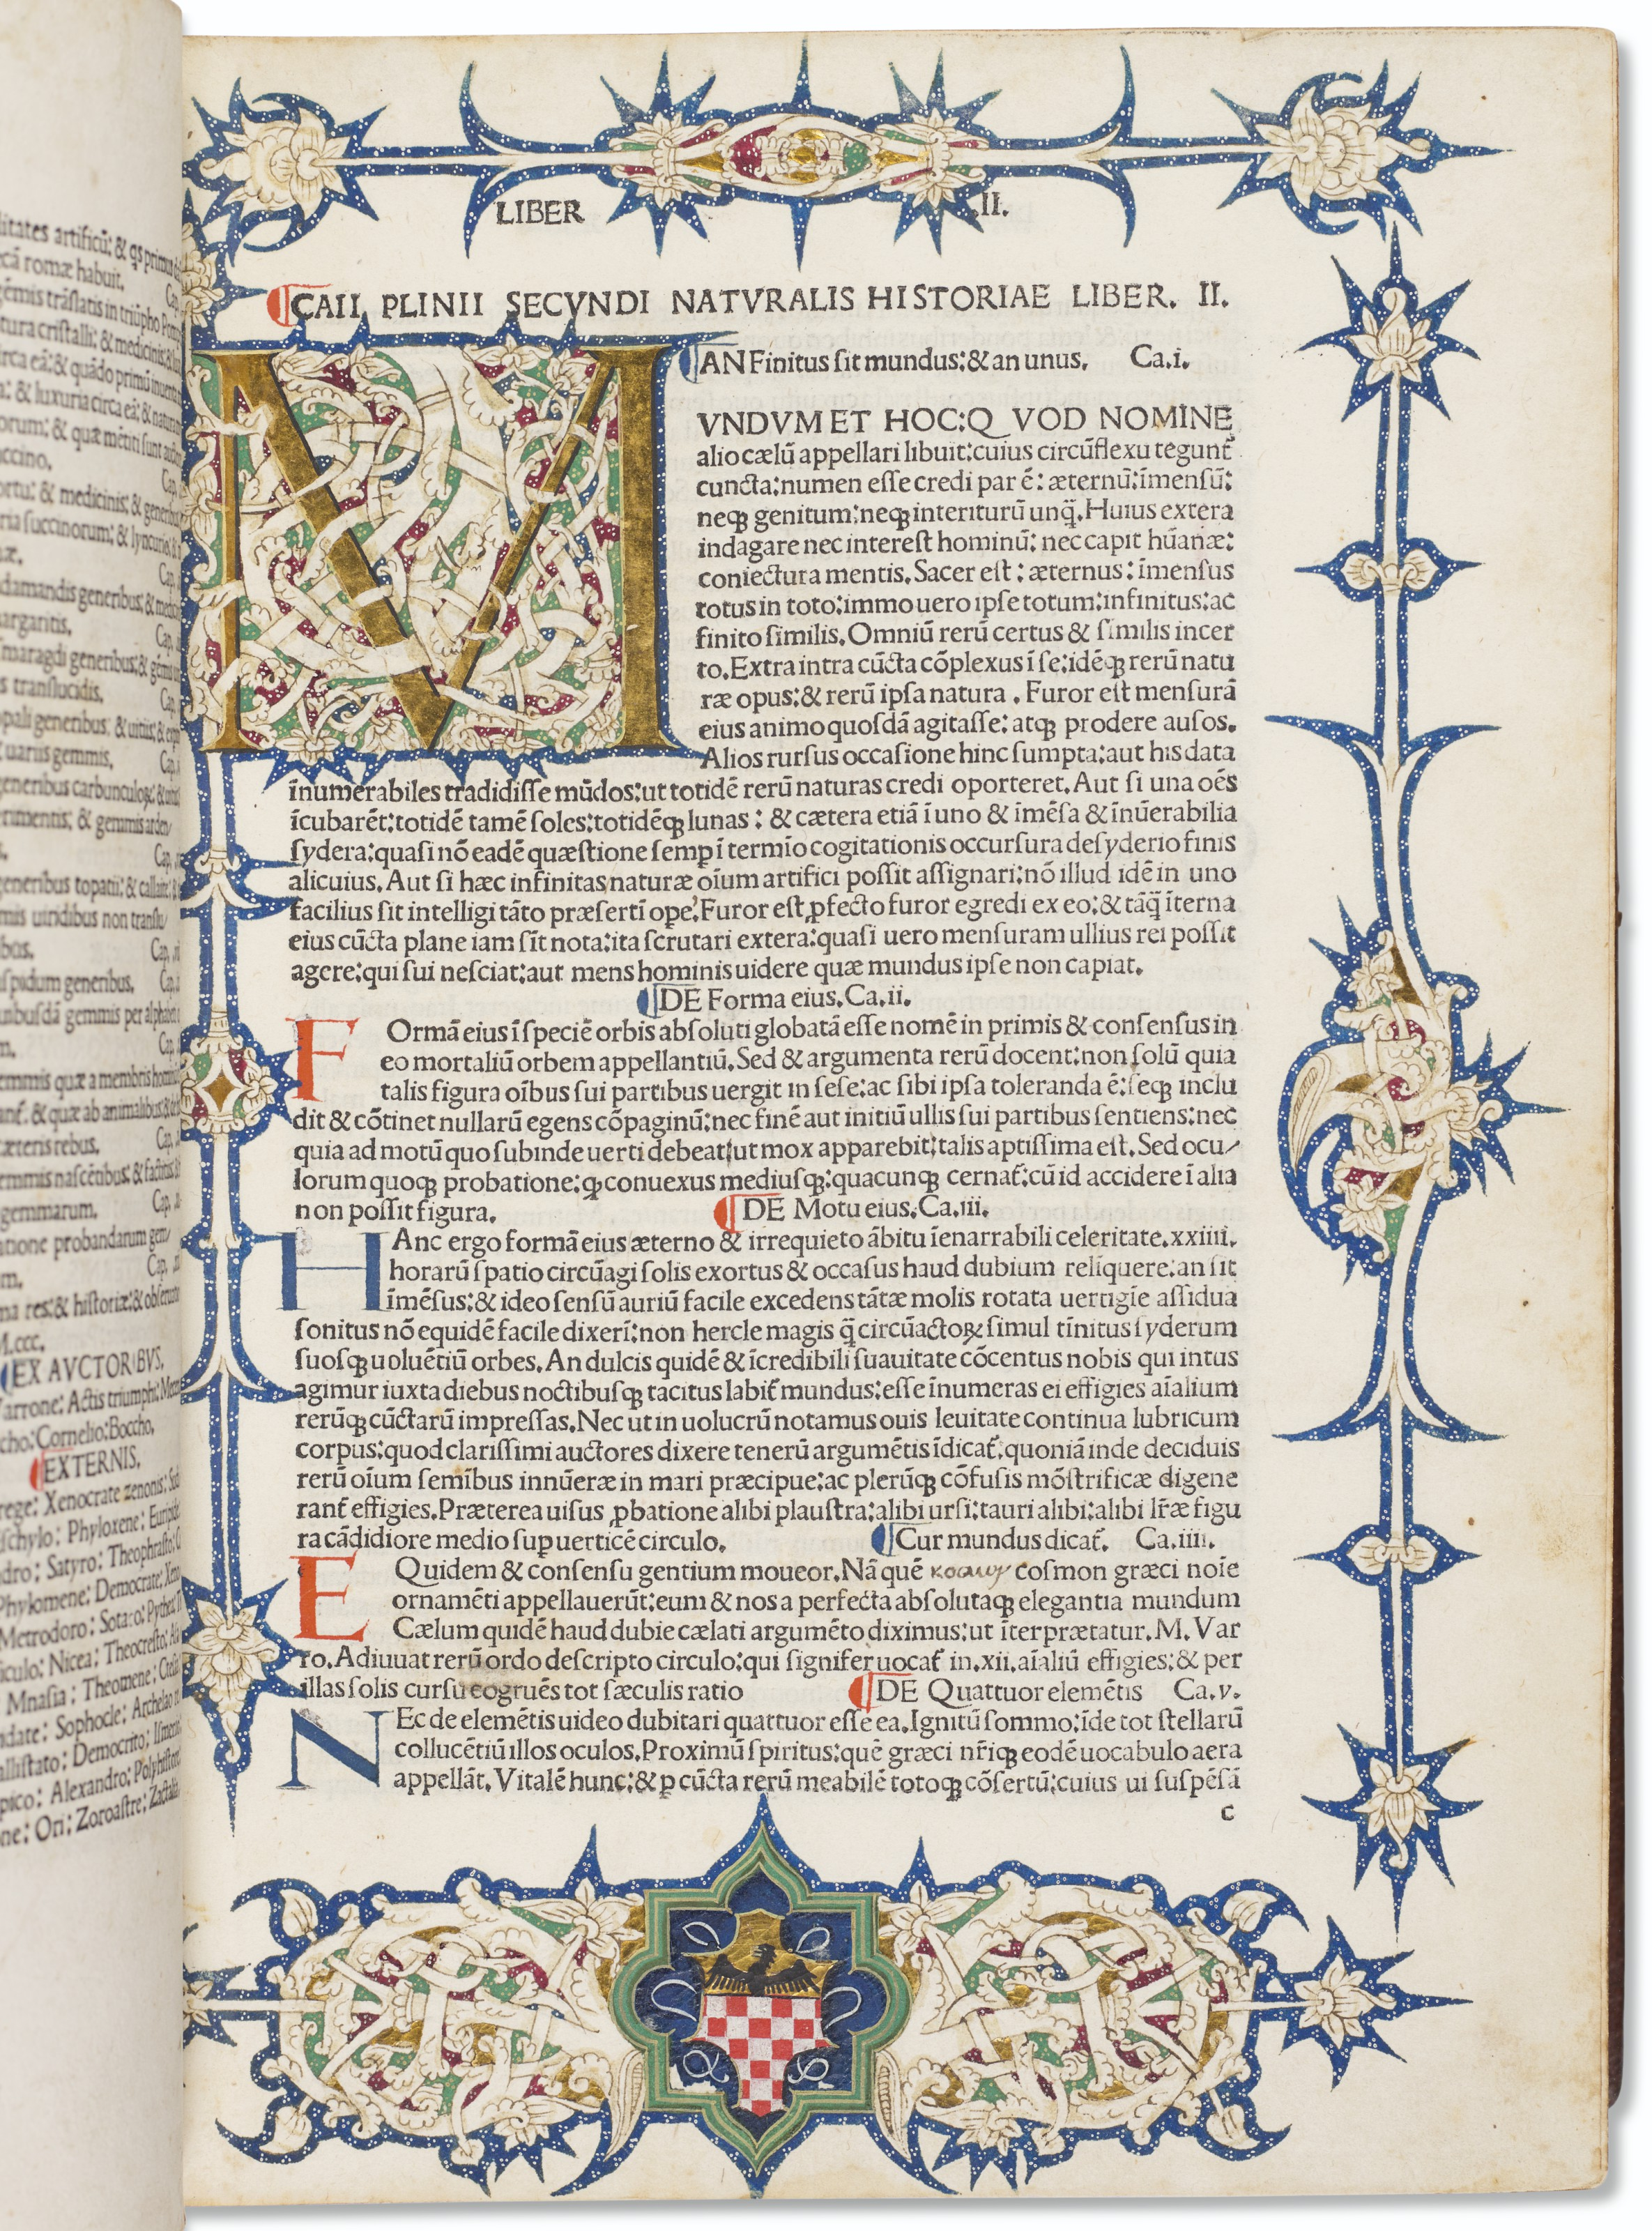 Beautifully illuminated incunable of the Natural History